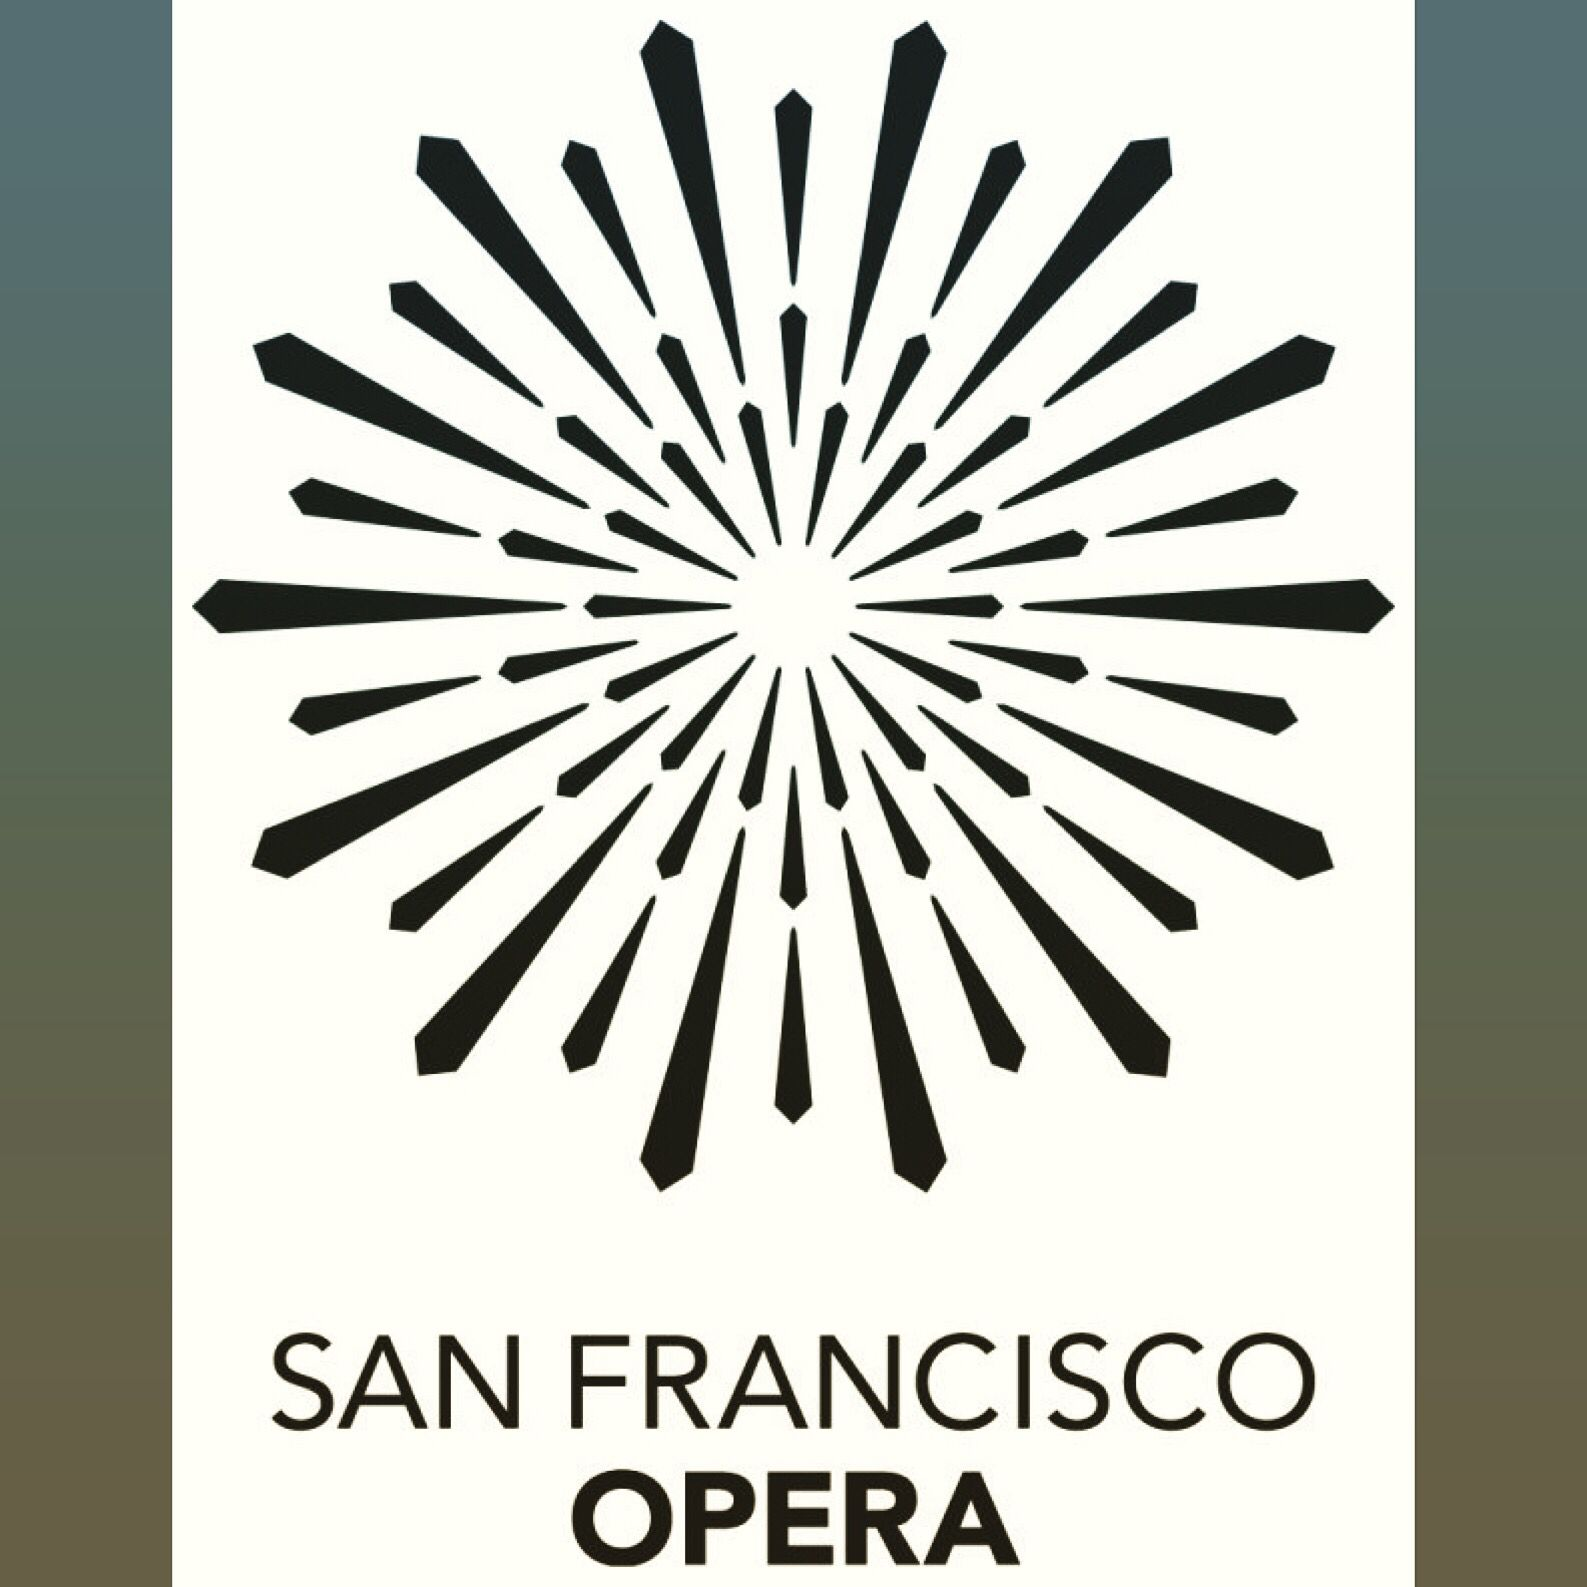 GREAT NEWS!!! Today I was offered (and accepted) a 2nd Union Contract at San Francisco Opera for this fall. That makes THREE union contracts with them this year alone...I'M OVER THE MOON! Thank You, Universe!! ORDER TICKETS HERE: #Meistersinger tickets: http://sfopera.com/Season-Tickets/2015-16-Season/Die-Meistersinger-von-Nurnberg.aspx #BarberOfSeville tickets: http://sfopera.com/Season-Tickets/2015-16-Season/The-Barber-of-Seville.aspx #PicOfTheDay #Gratitude #OnStage #StageLife